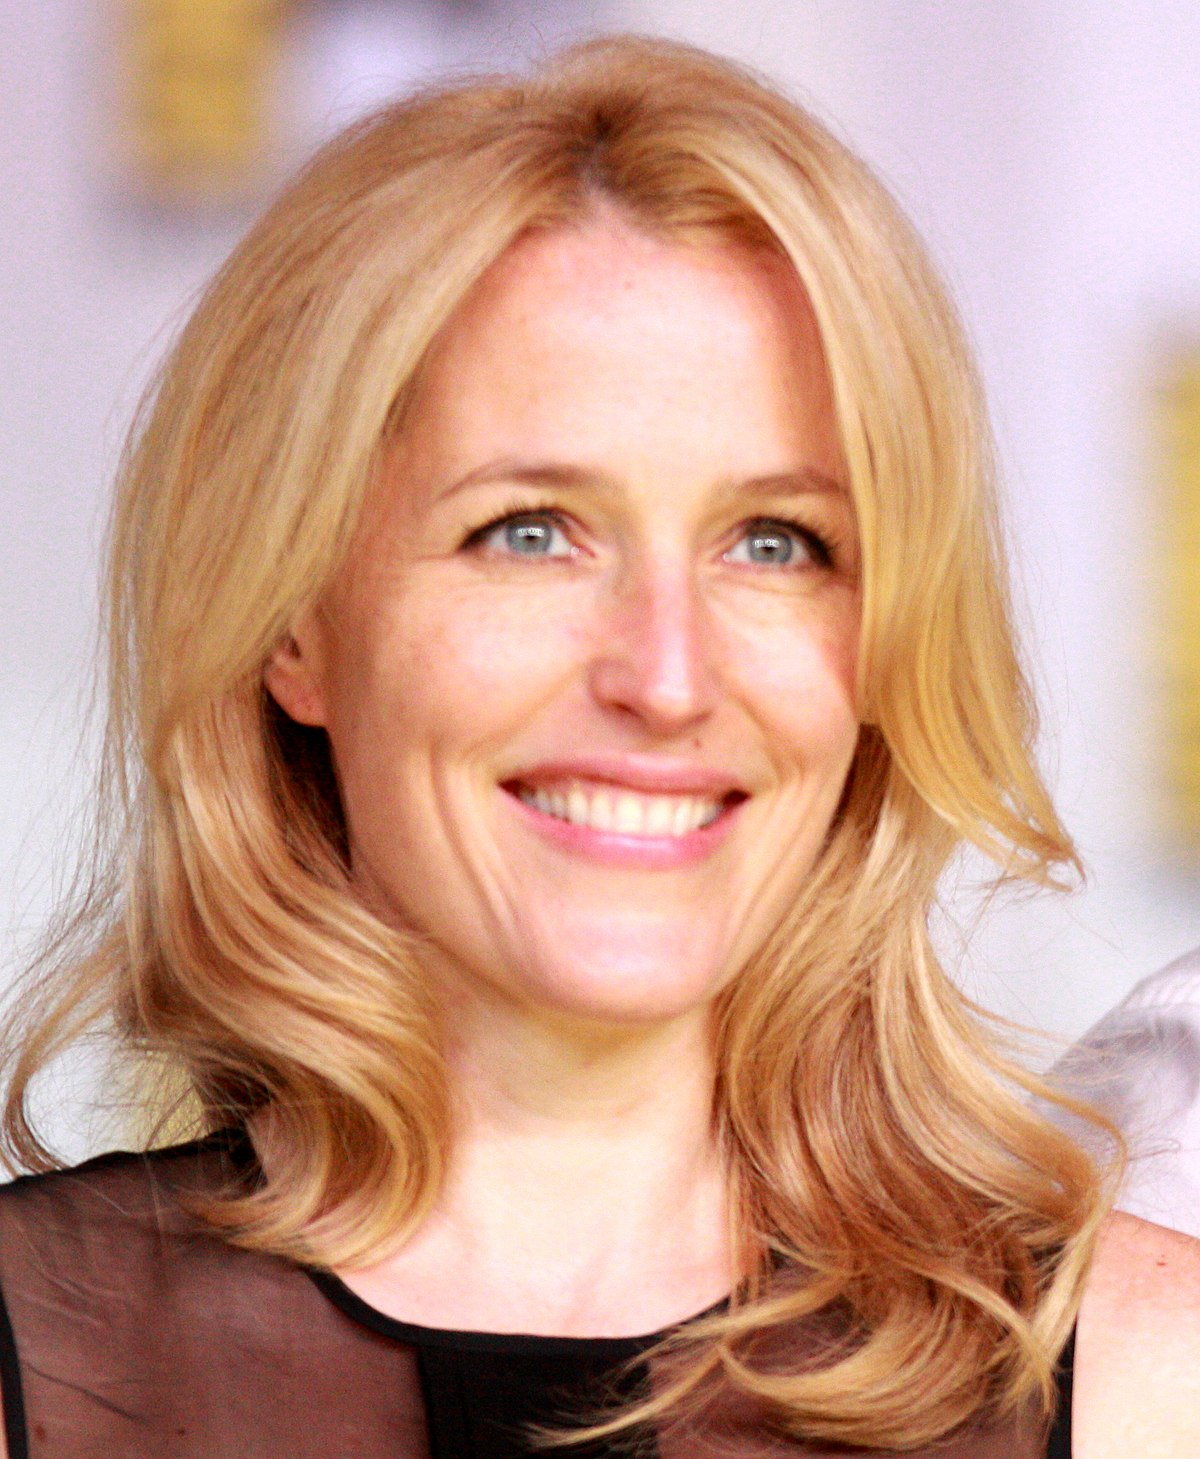 gillian anderson - photo #4